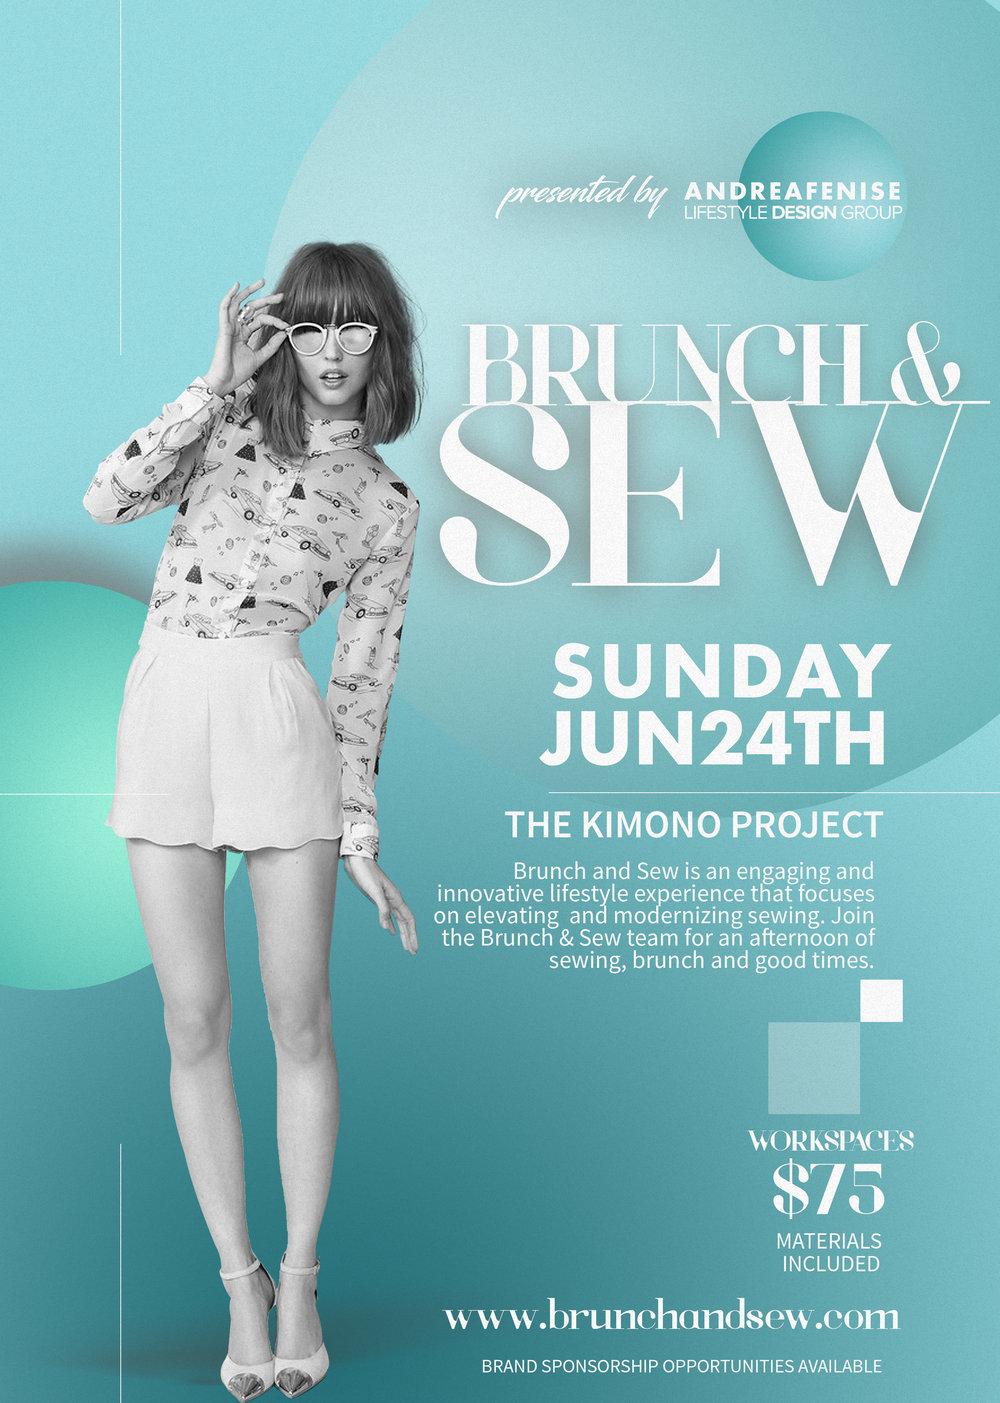 Andrea Fenise Memphis Fashion Blogger shares next Brunch and Sew workshop